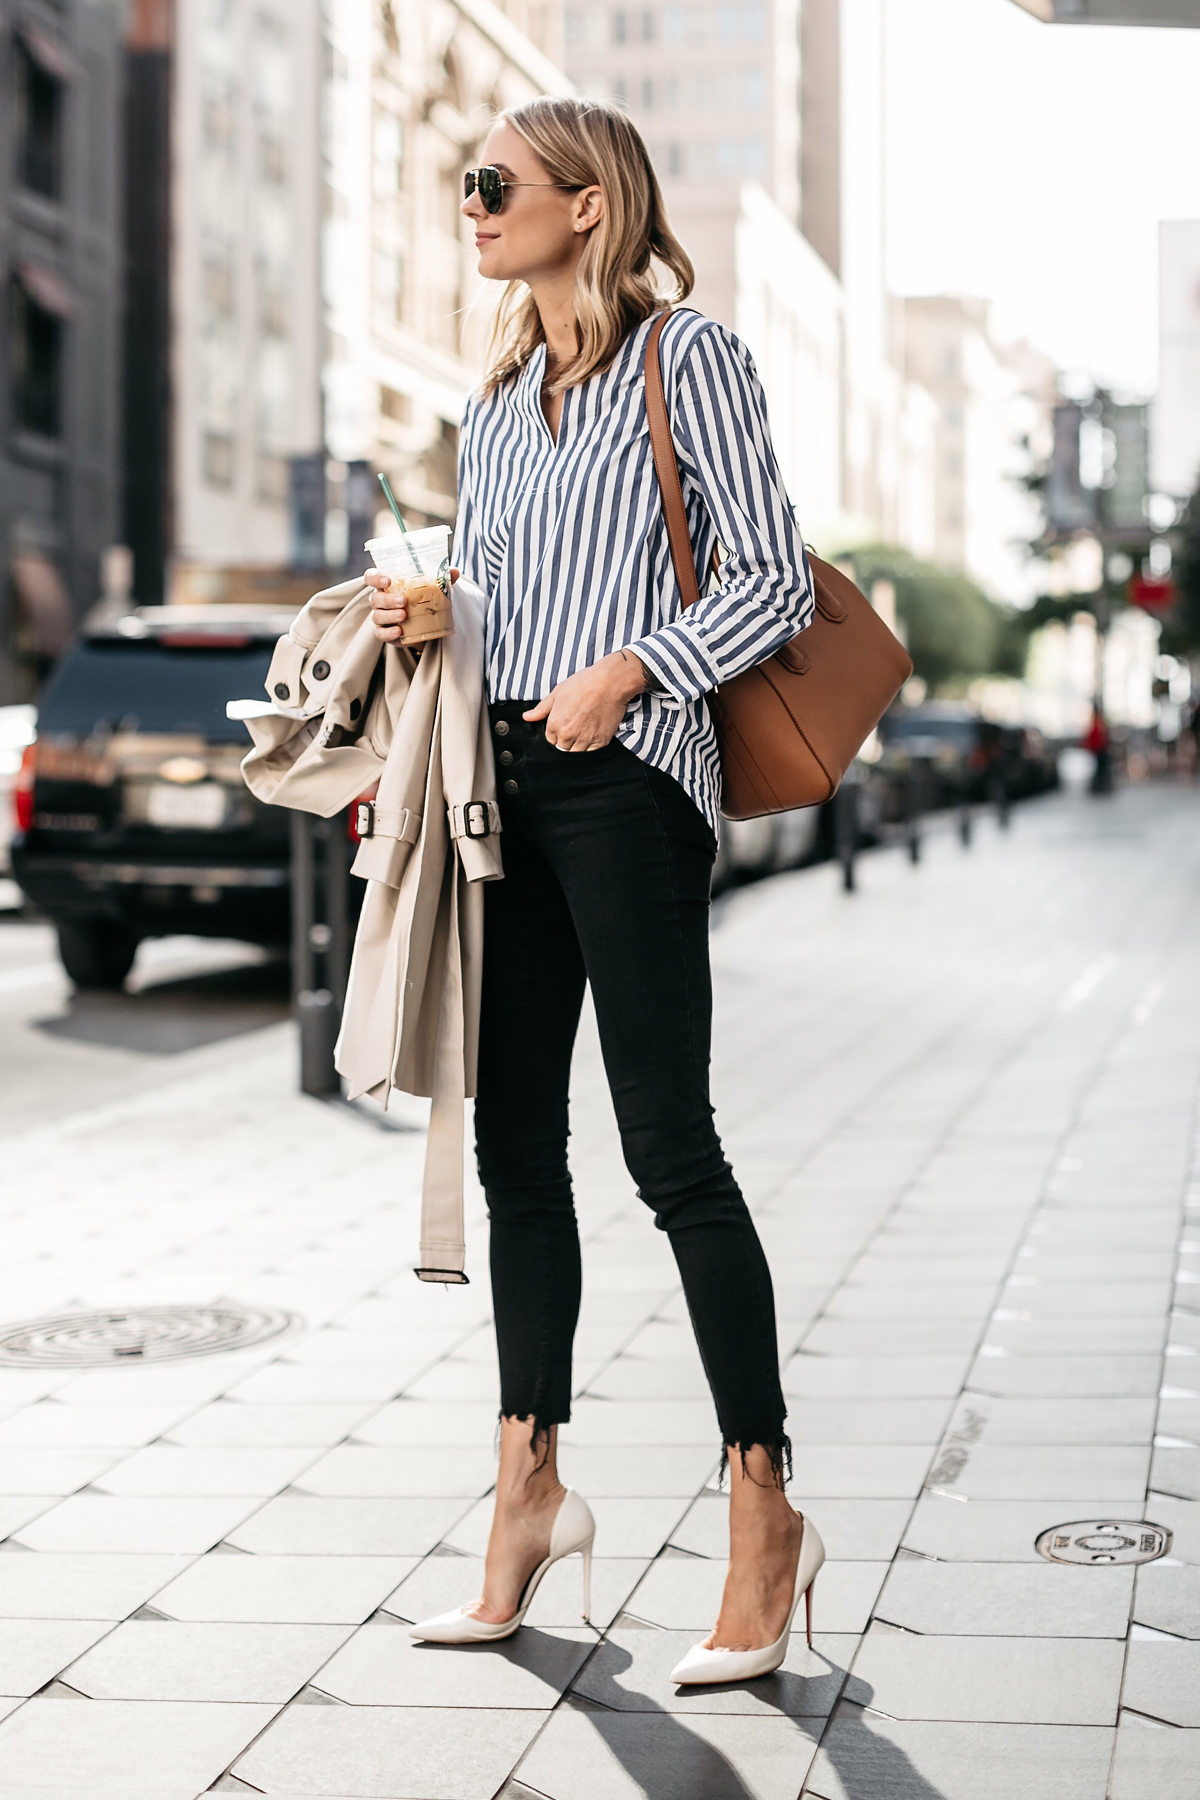 Blonde Woman Wearing Club Monaco Trench Coat Jcrew Blue White Stripe Top Madewell Black Ripped Skinny Jeans Christian Louboutin White Pumps Givenchy Antigona Small Cognac Satchel Fashion Jackson Dallas Blogger Fashion Blogger Street Style